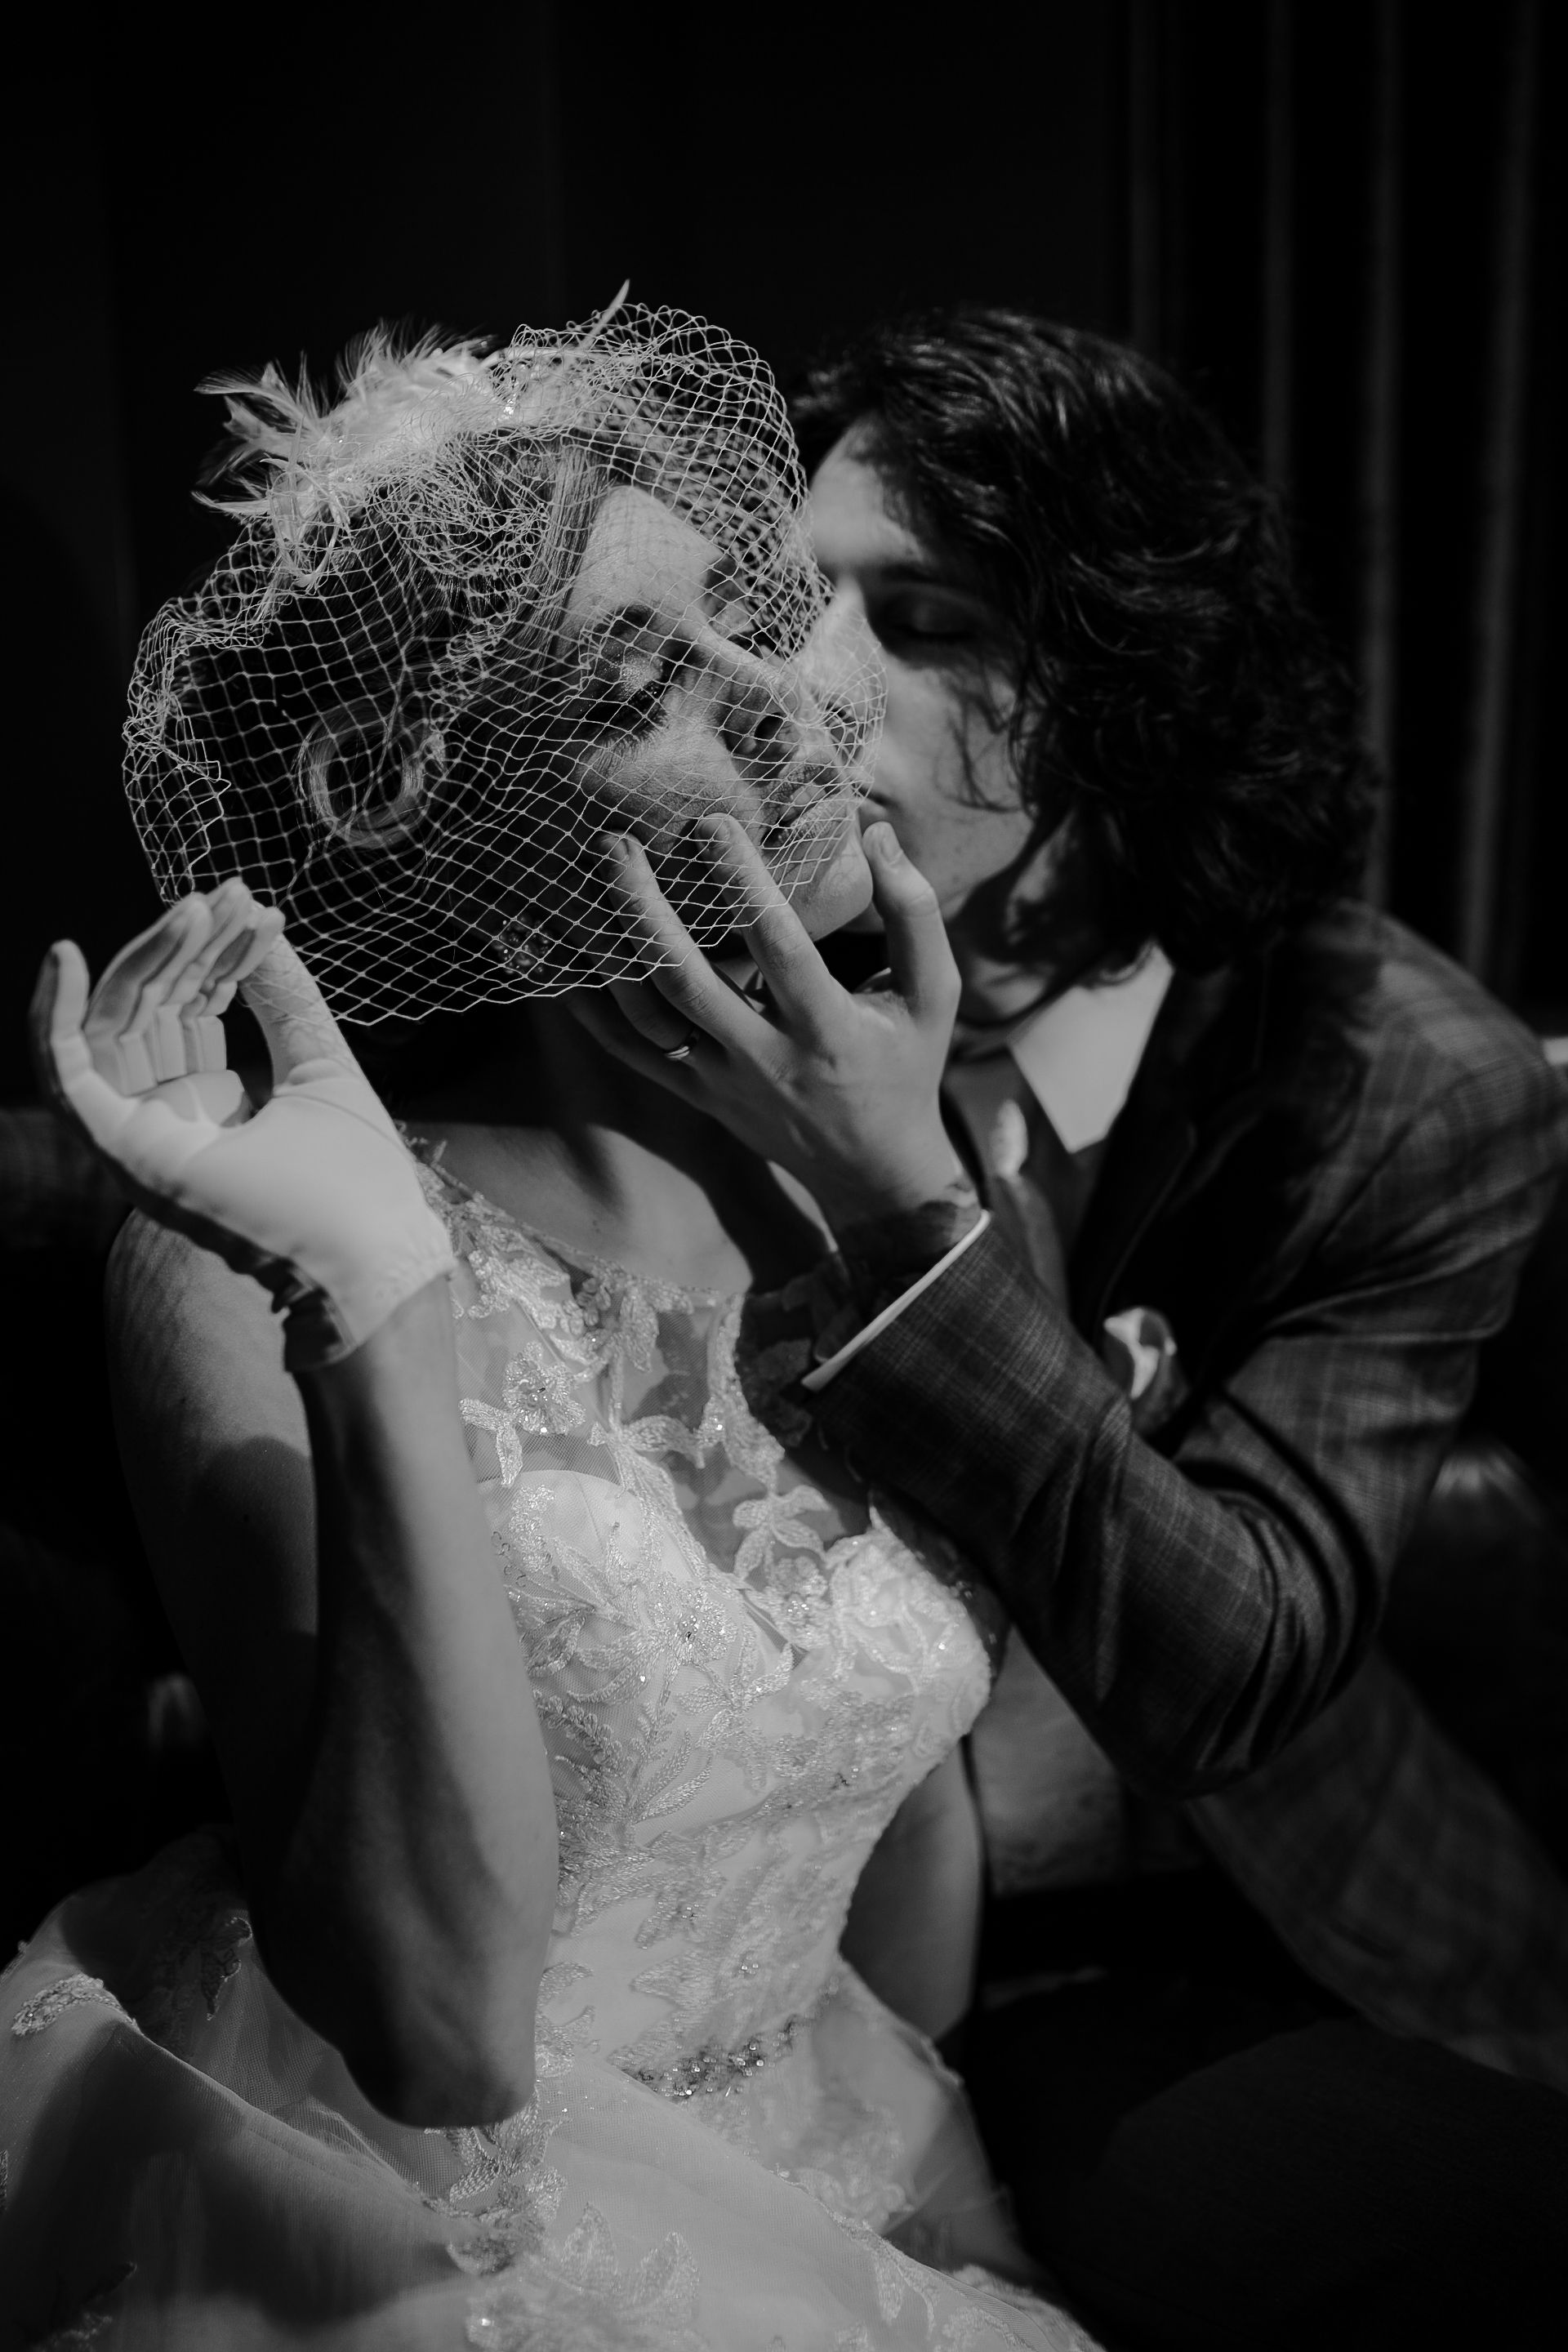 black and white image of intimate moment between bride and groom, groom kisses cheek and bride hold tulle from her vintage hat over her eyes